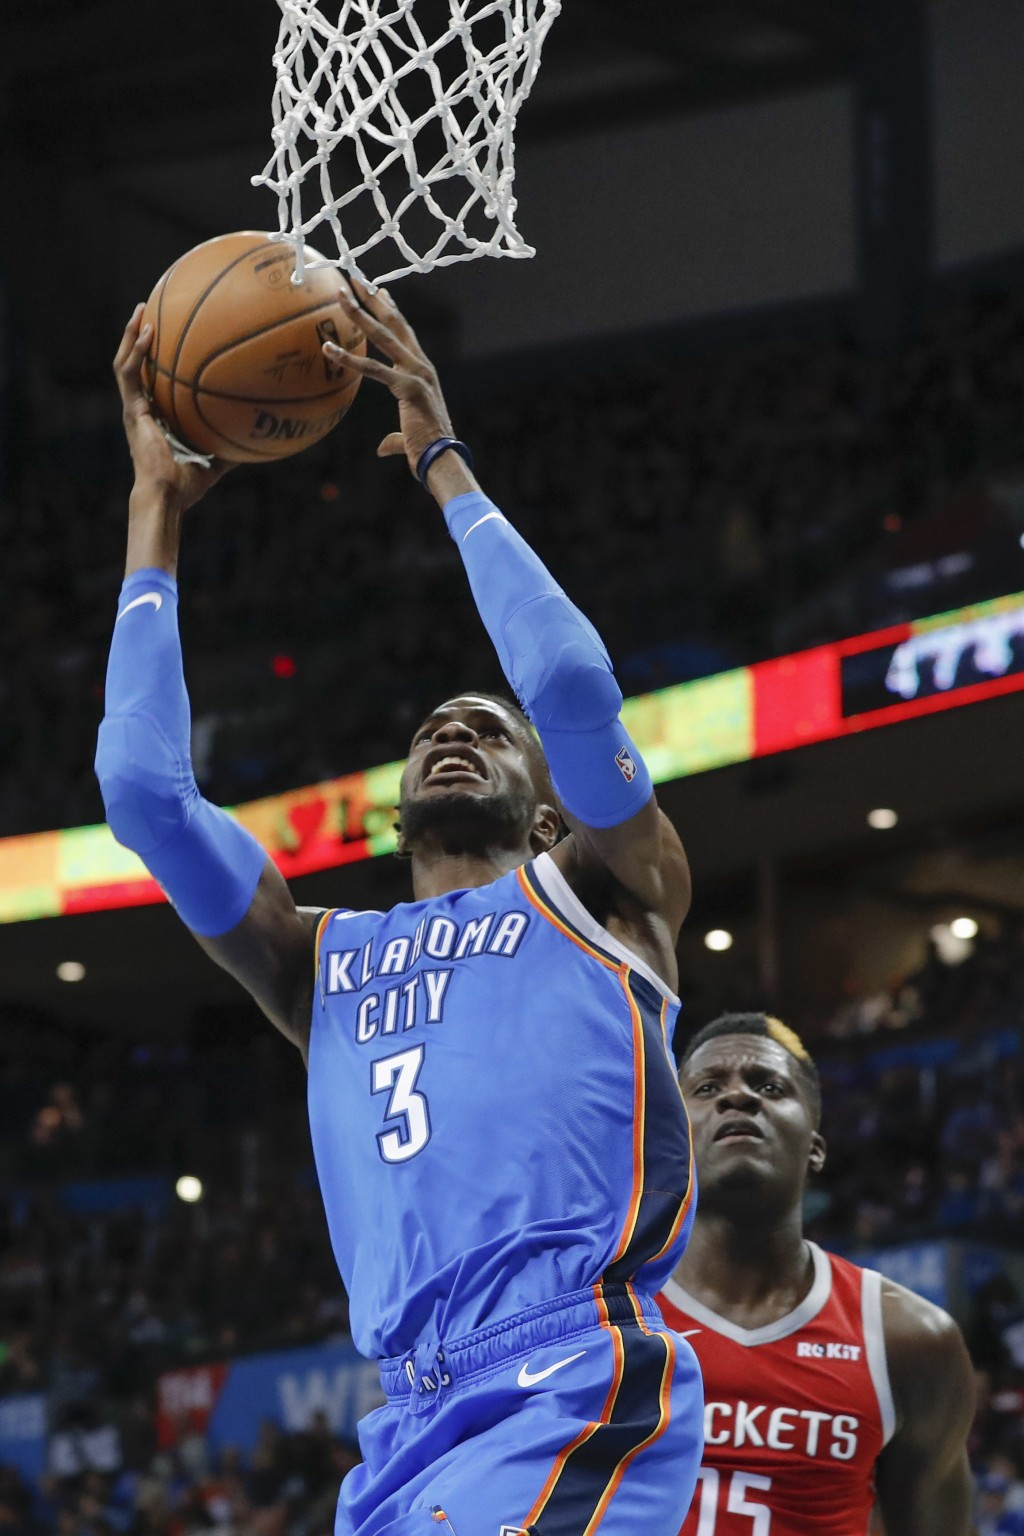 Oklahoma City Thunder forward Nerlens Noel (3) goes up for a basket ahead of Houston Rockets center Clint Capela (15) during the first half of an NBA